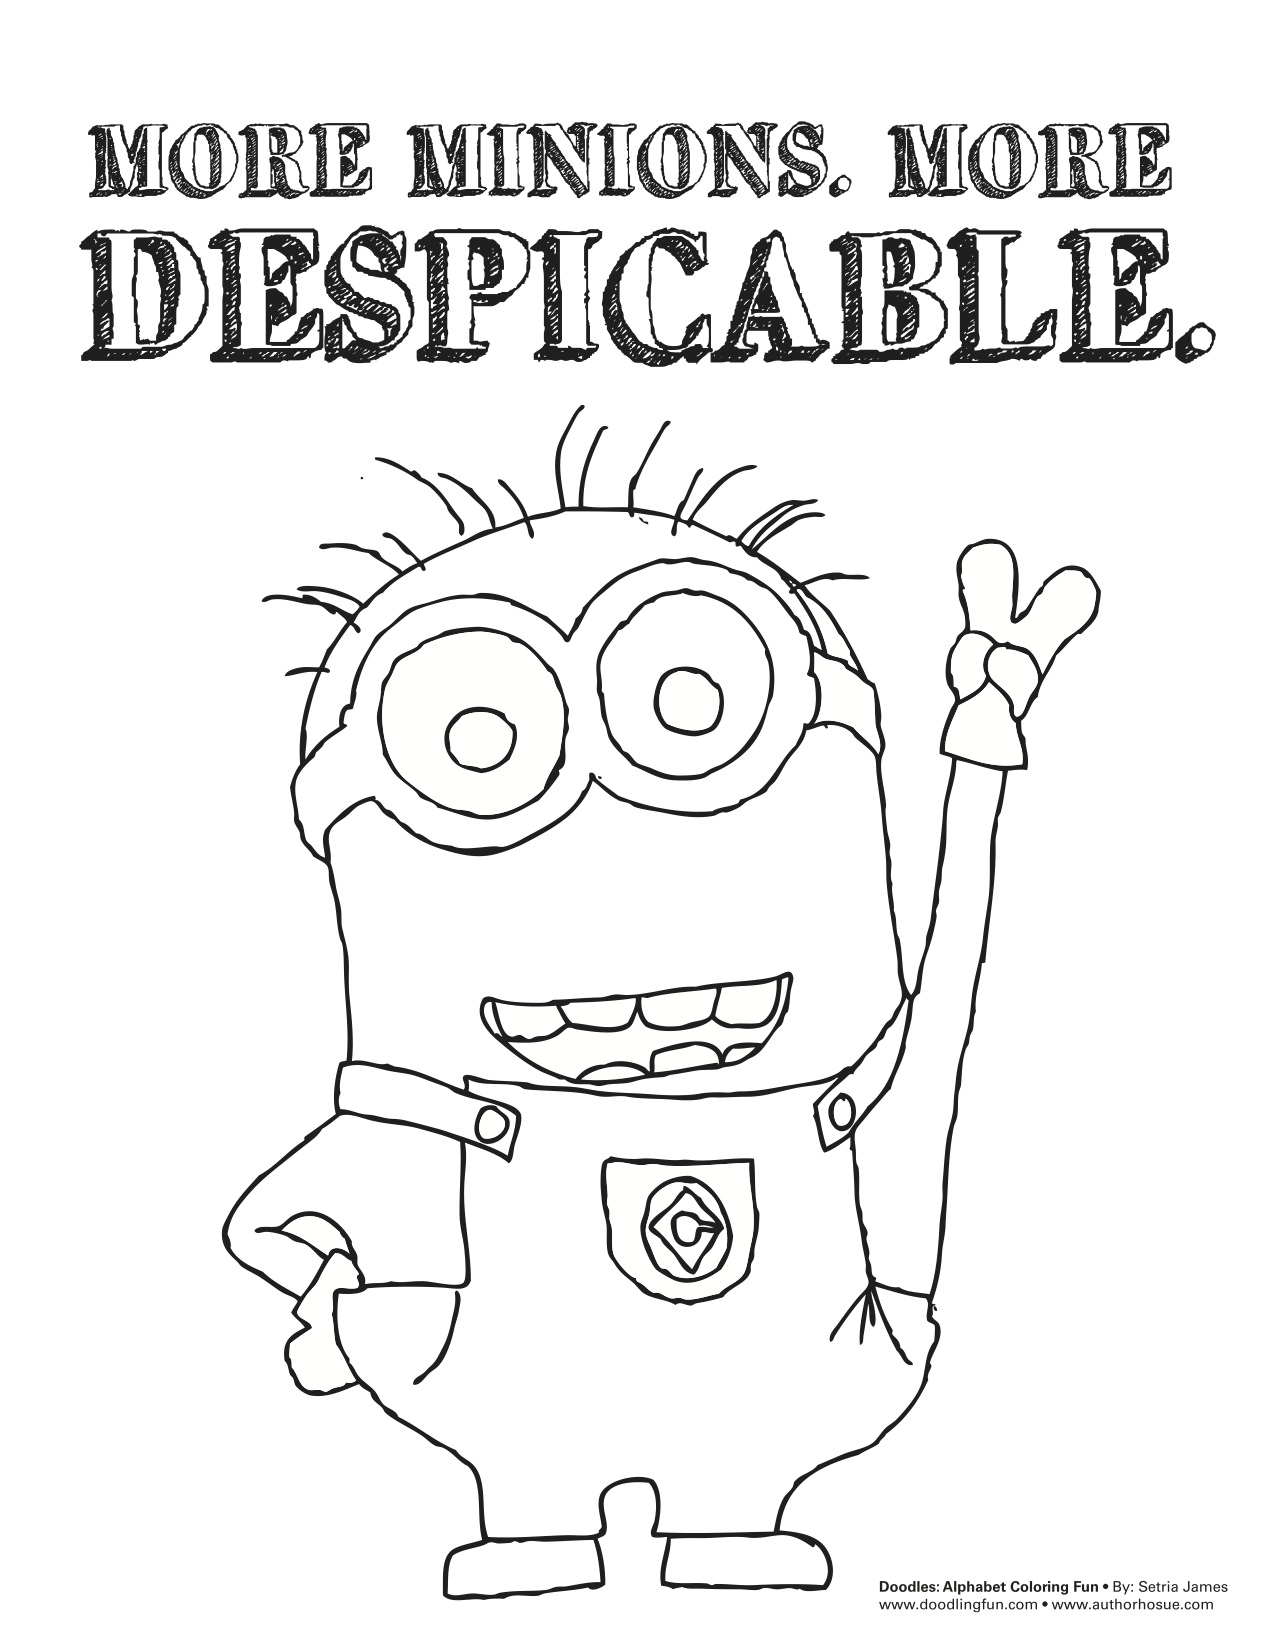 Free Coloring Pages Of Lucy From Despicable Me 2 Despicable Me 2 Coloring Pages